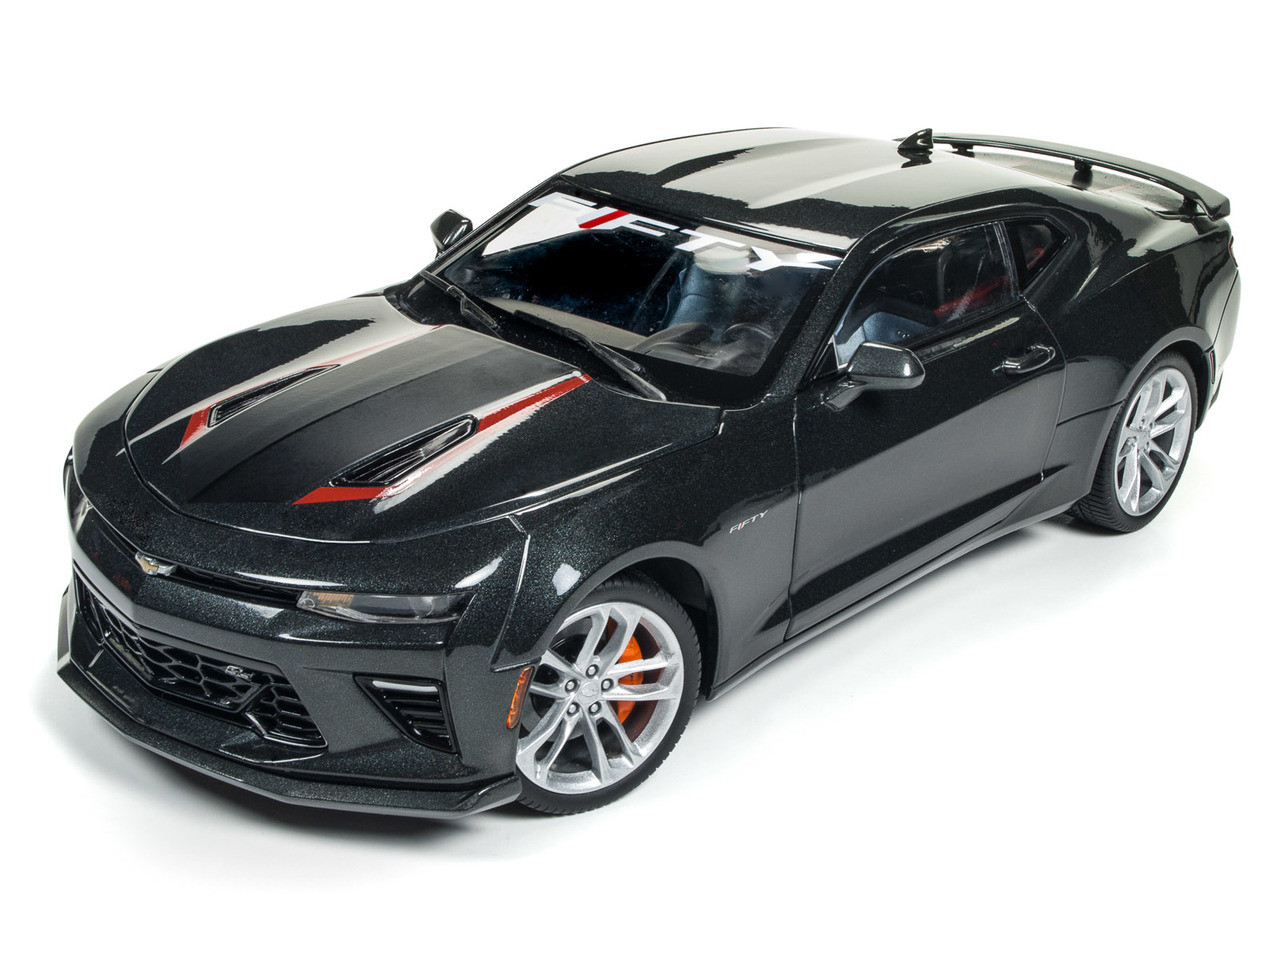 2017 Camaro 50th Anniversary >> 2017 Chevy Camaro Ss 50th Anniversary 1 18 Scale By Auto World Aw243